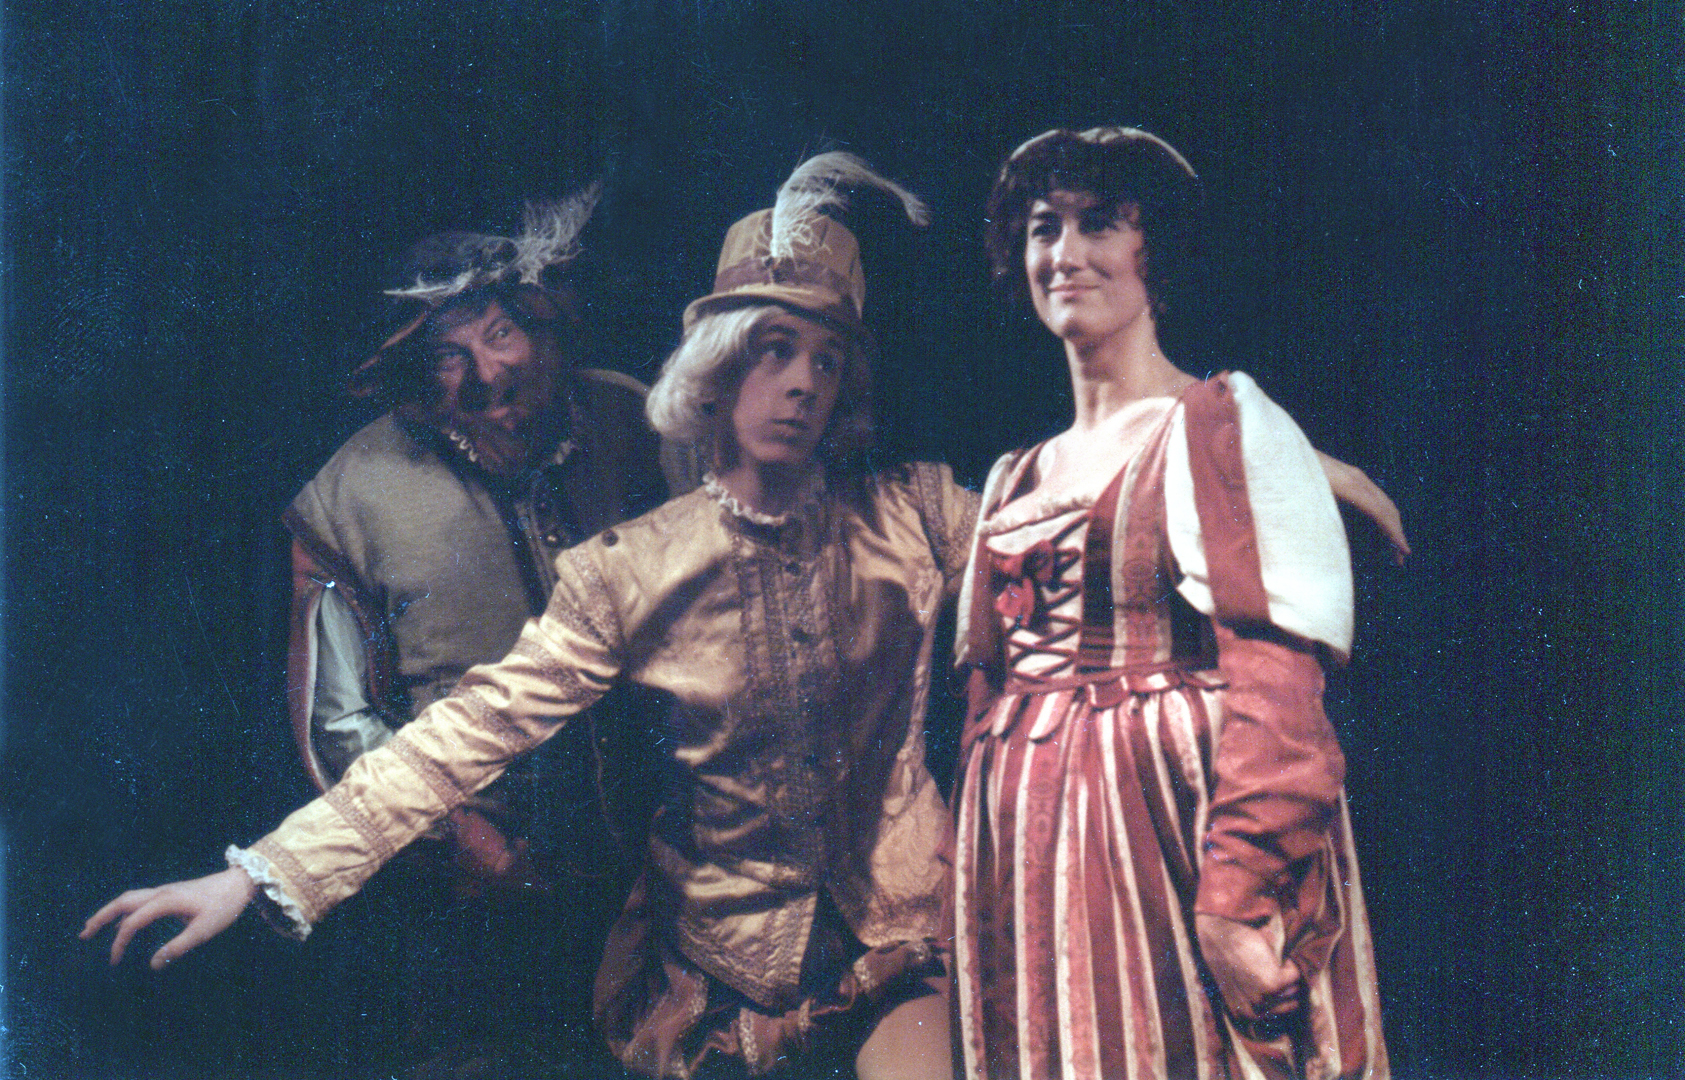 Once a 19 year-old Blonde for Shakespeare... with yellow pumpkin pants, buckled shoes, stockings, and a feathered hat.